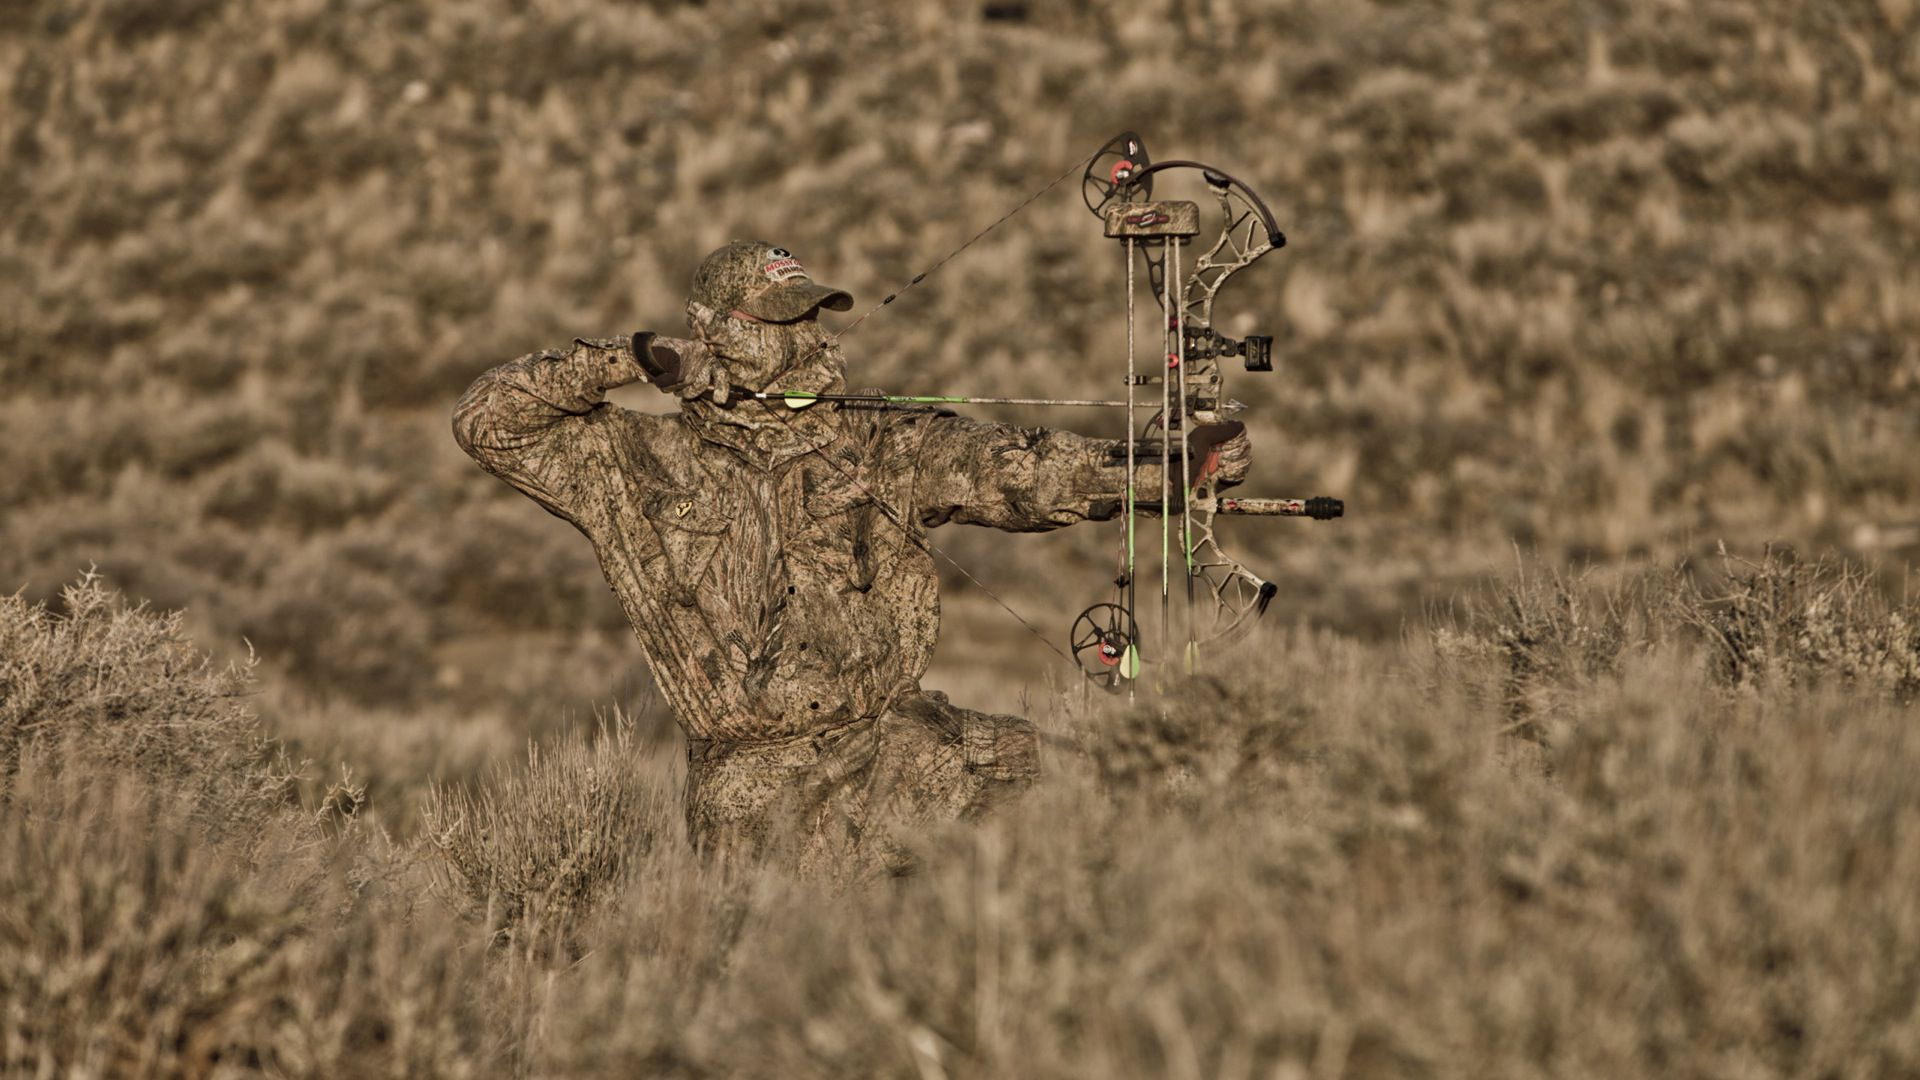 mossy oak brush camo pictures camo wallpaper on walls hunting coveralls id=21313